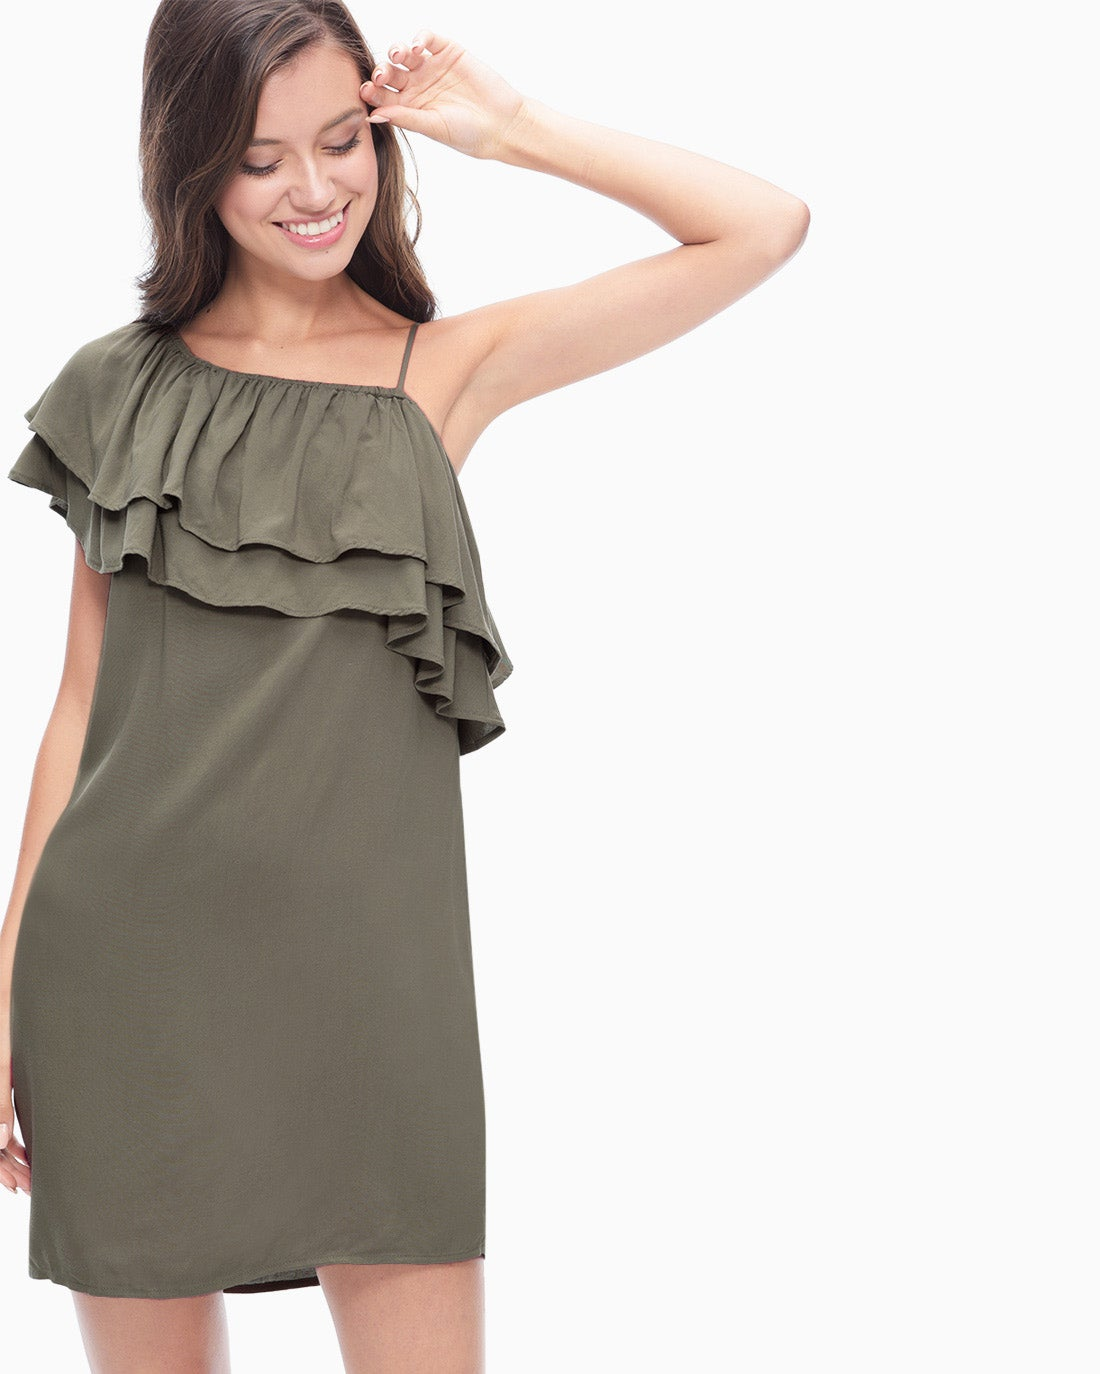 Splendid Women's One Shoulder Dress